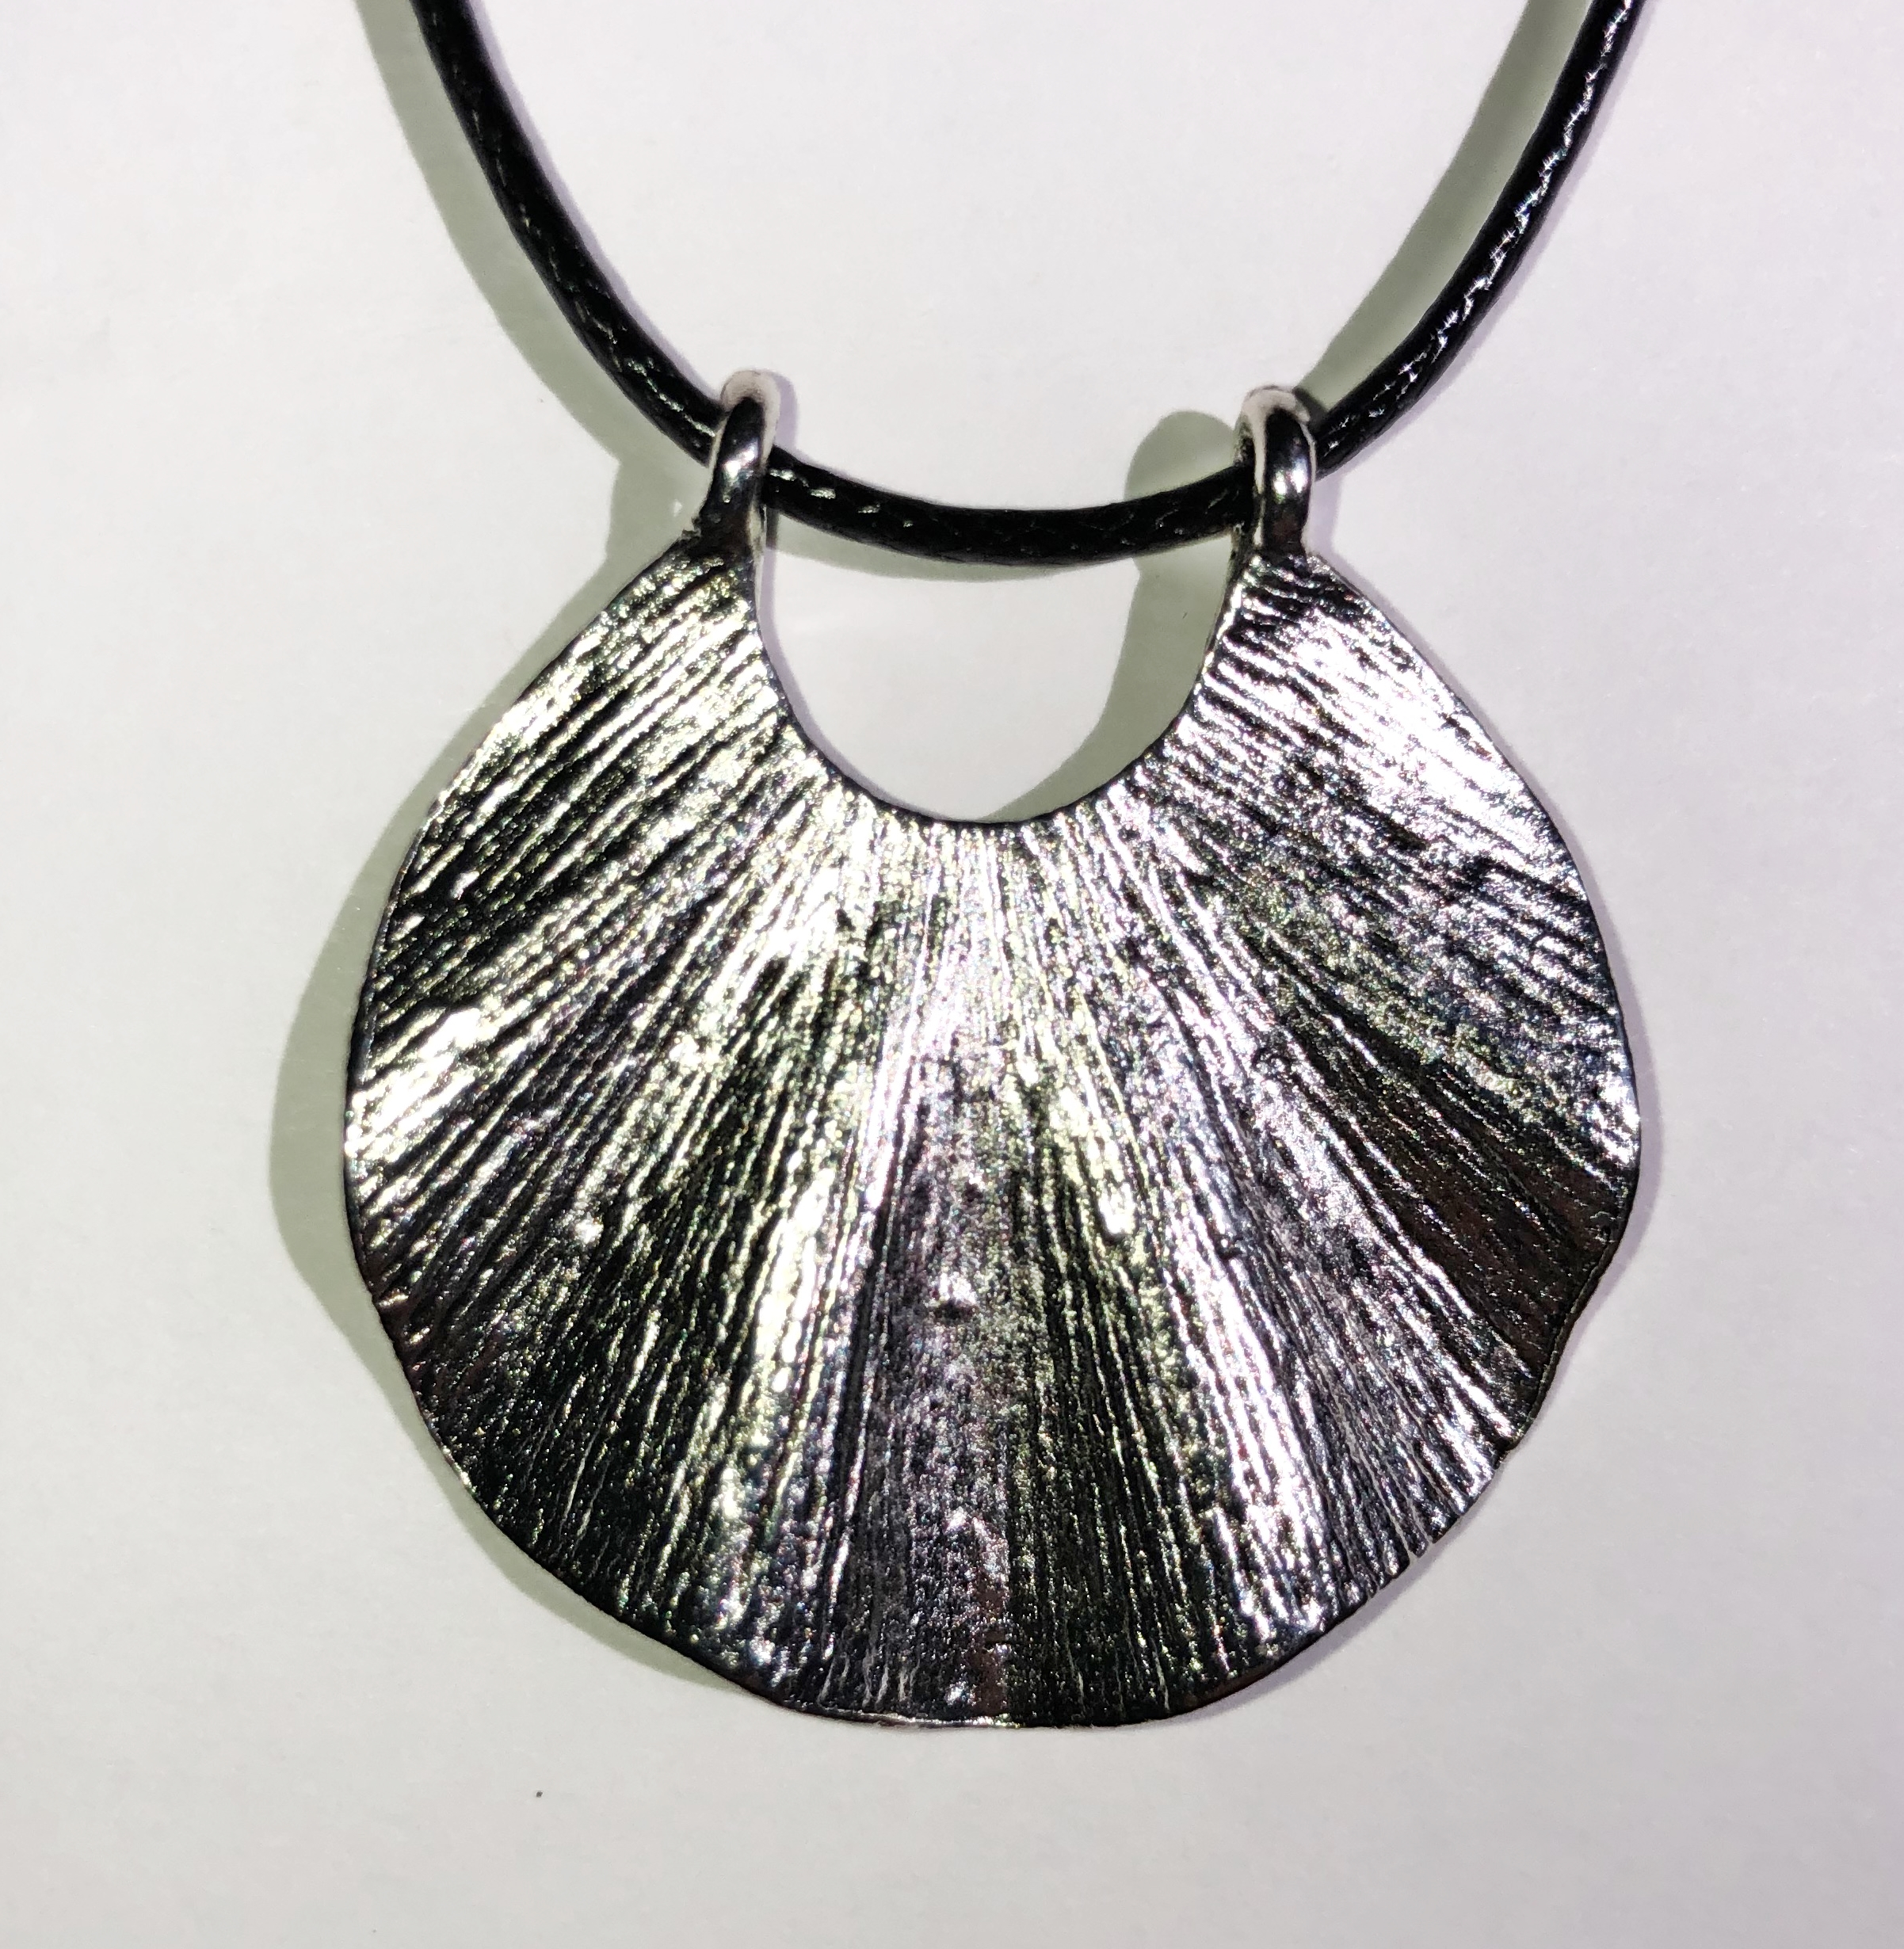 Collier feuille argent tibétain - Angel shop